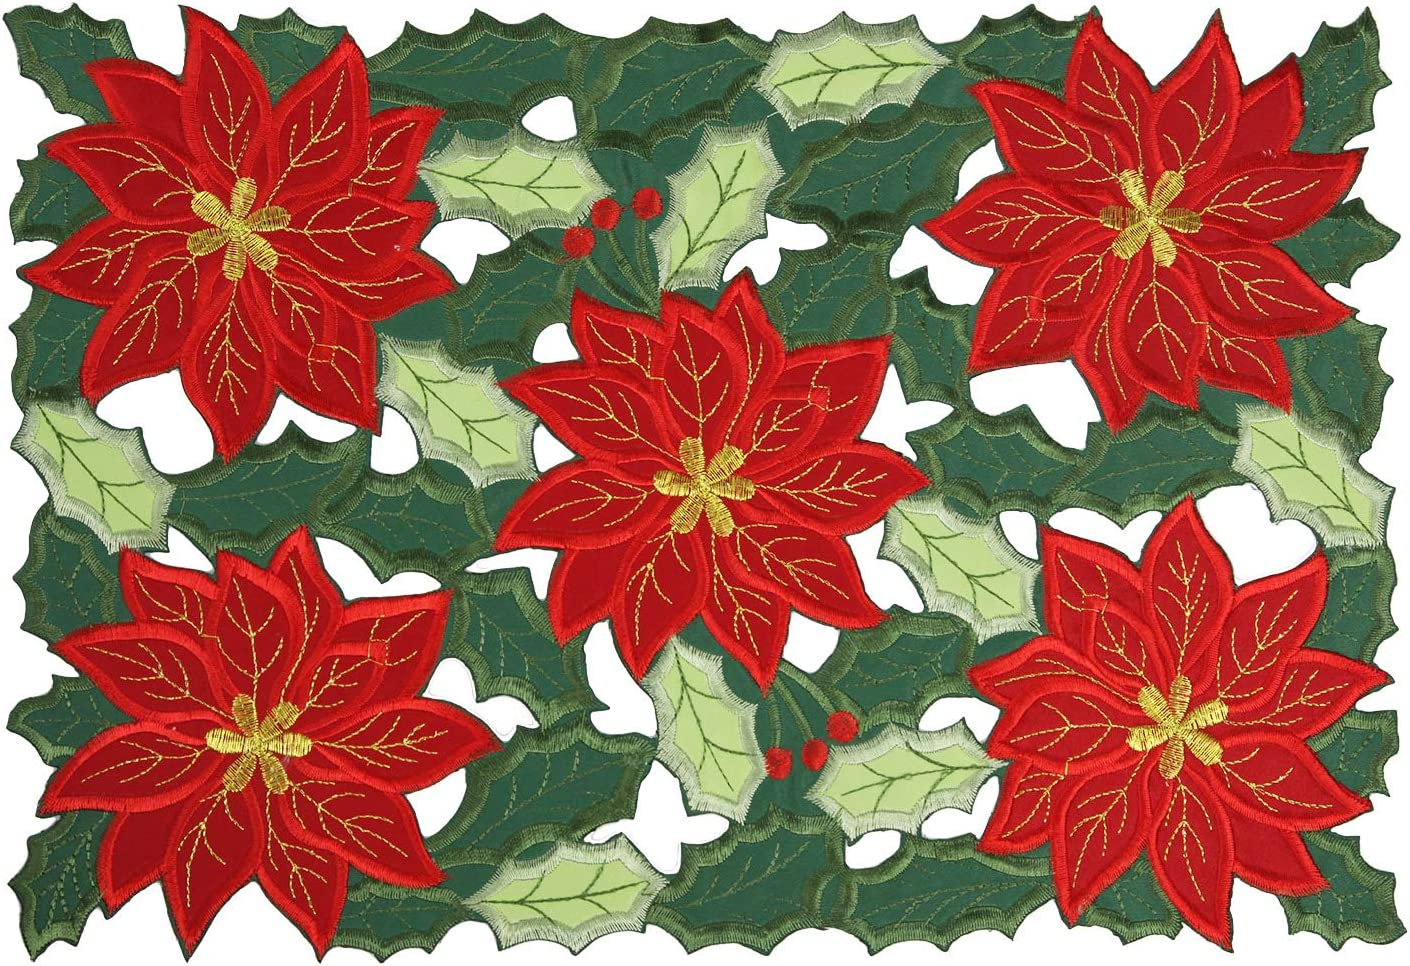 Feuille Christmas Placemats Set of 4 –Polyester Embroidered Poinsettia Placemats, Green and Red Placemats for Christmas, Table Linens Perfect for Christmas Decorations Indoor (11x17 inch Set of 4)